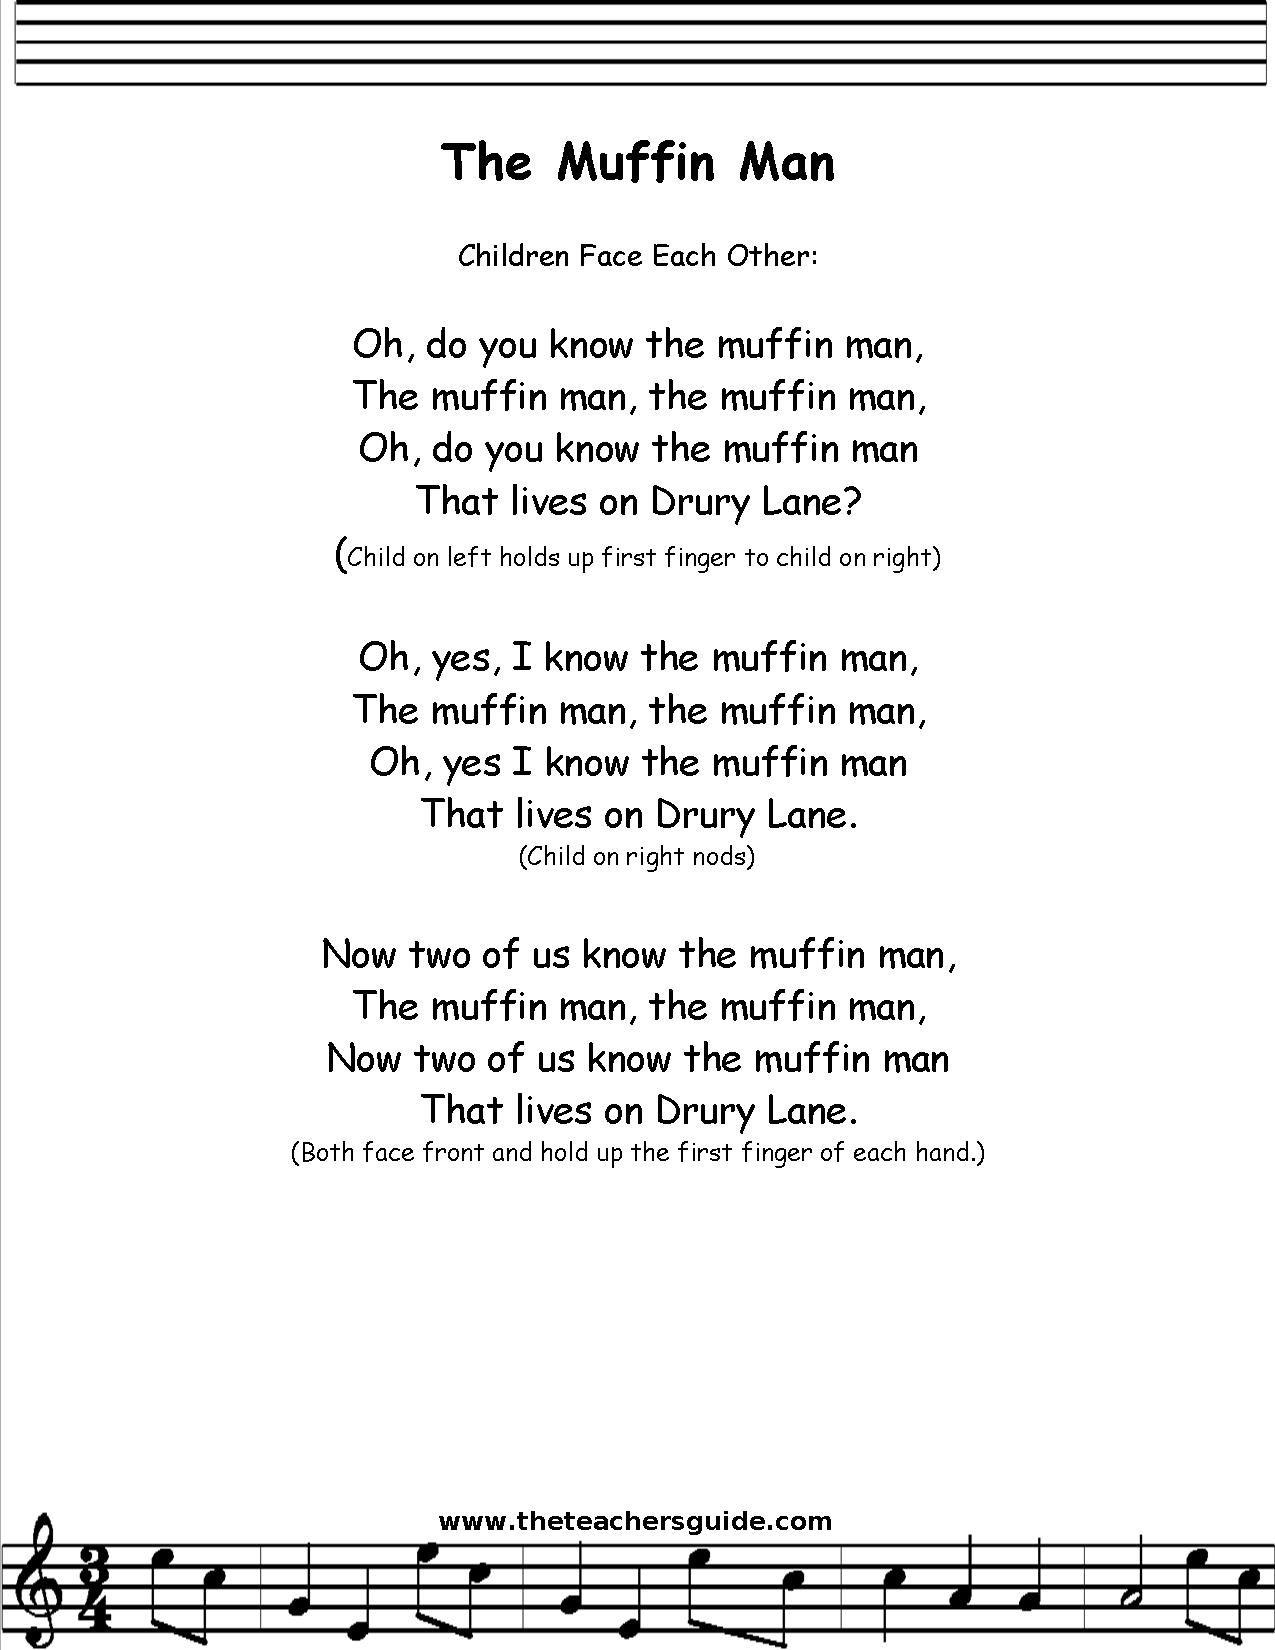 Muffin Man Lyrics Printout